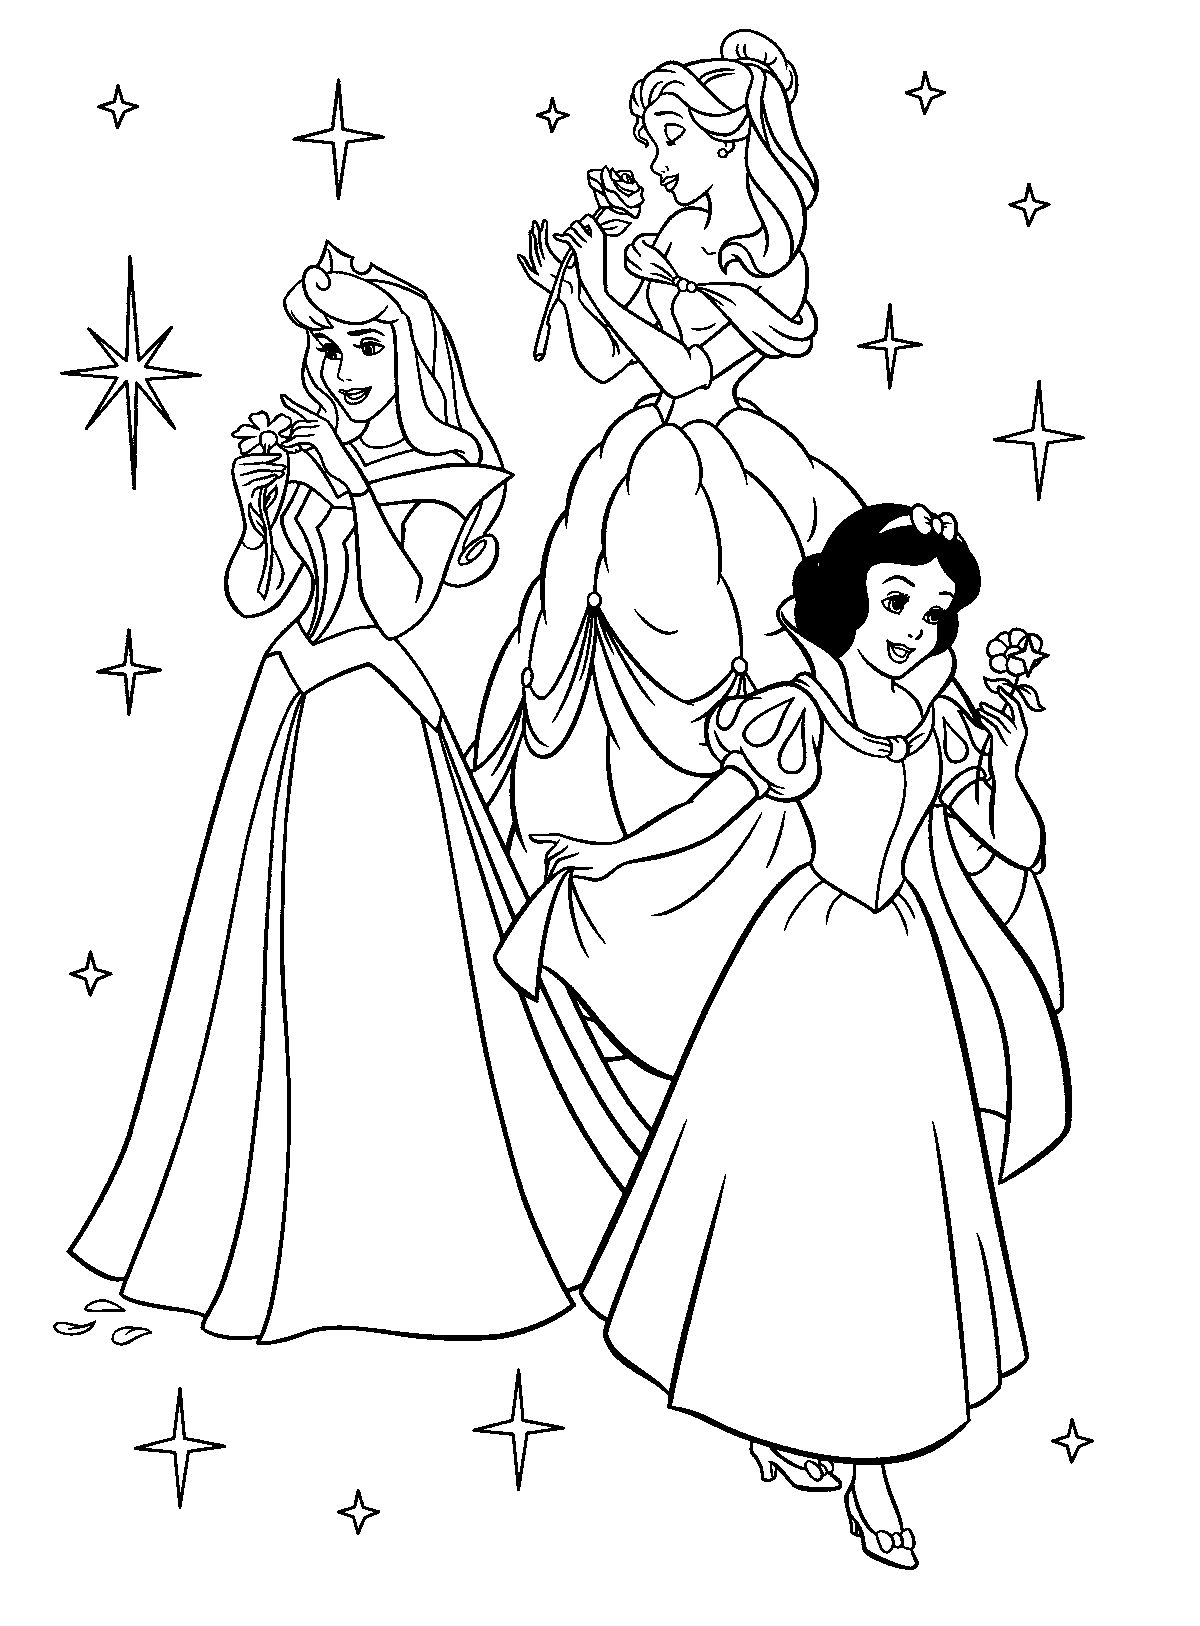 coloring pages of princesses Free Printable Disney Princess Coloring Pages For Kids | Színezők  coloring pages of princesses